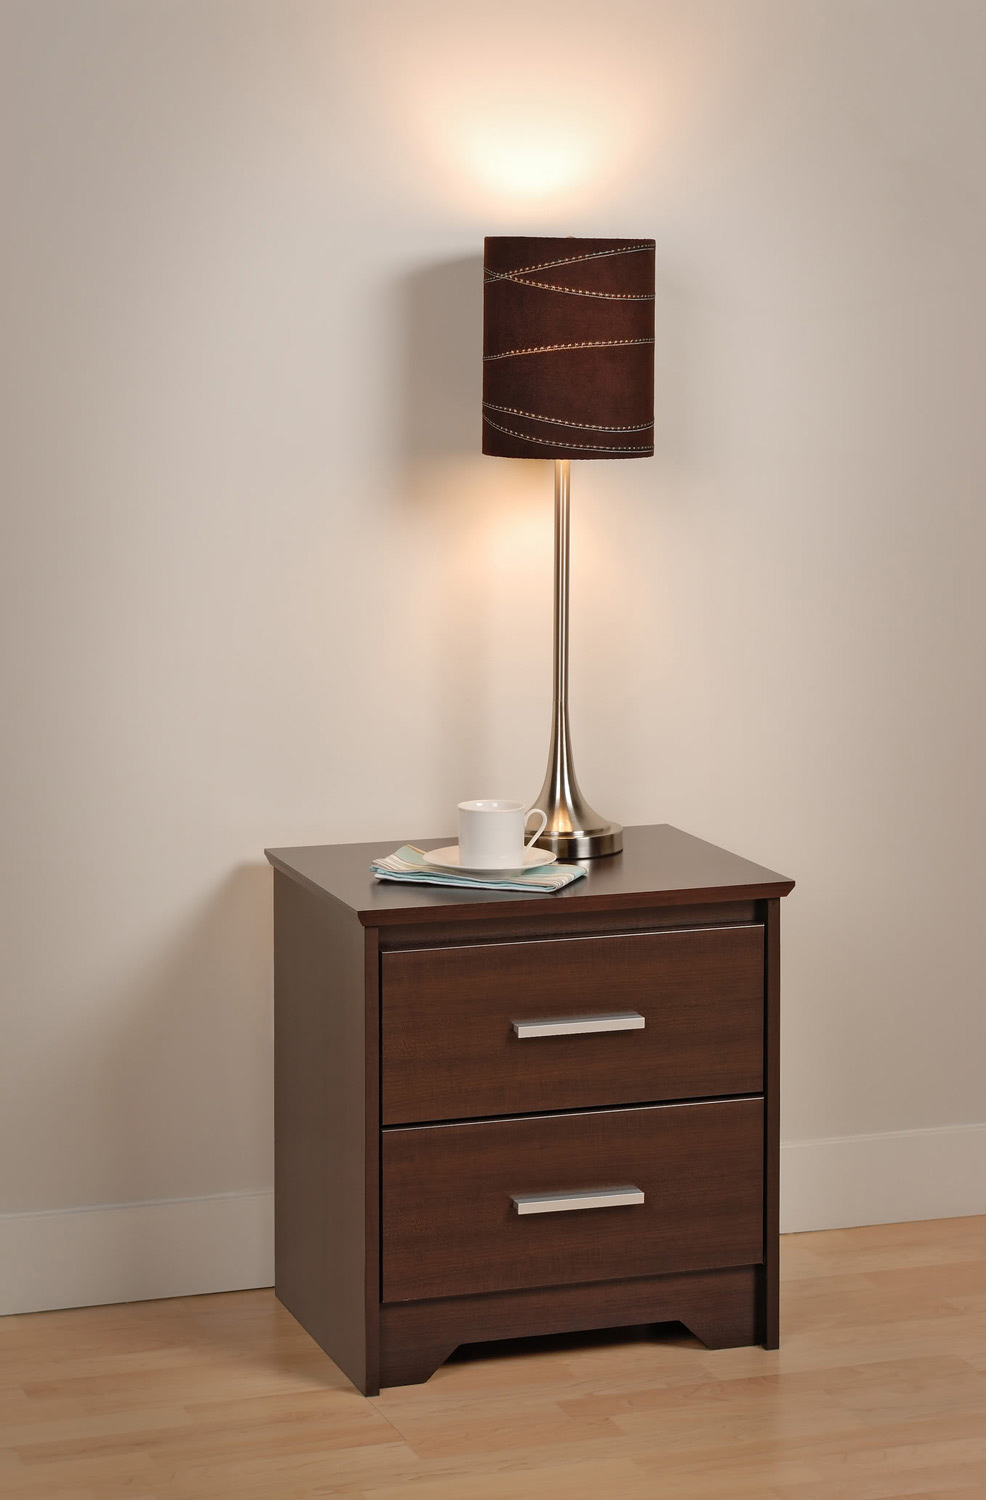 Prepac Coal Harbor 2 Drawer Night Stand - Espresso